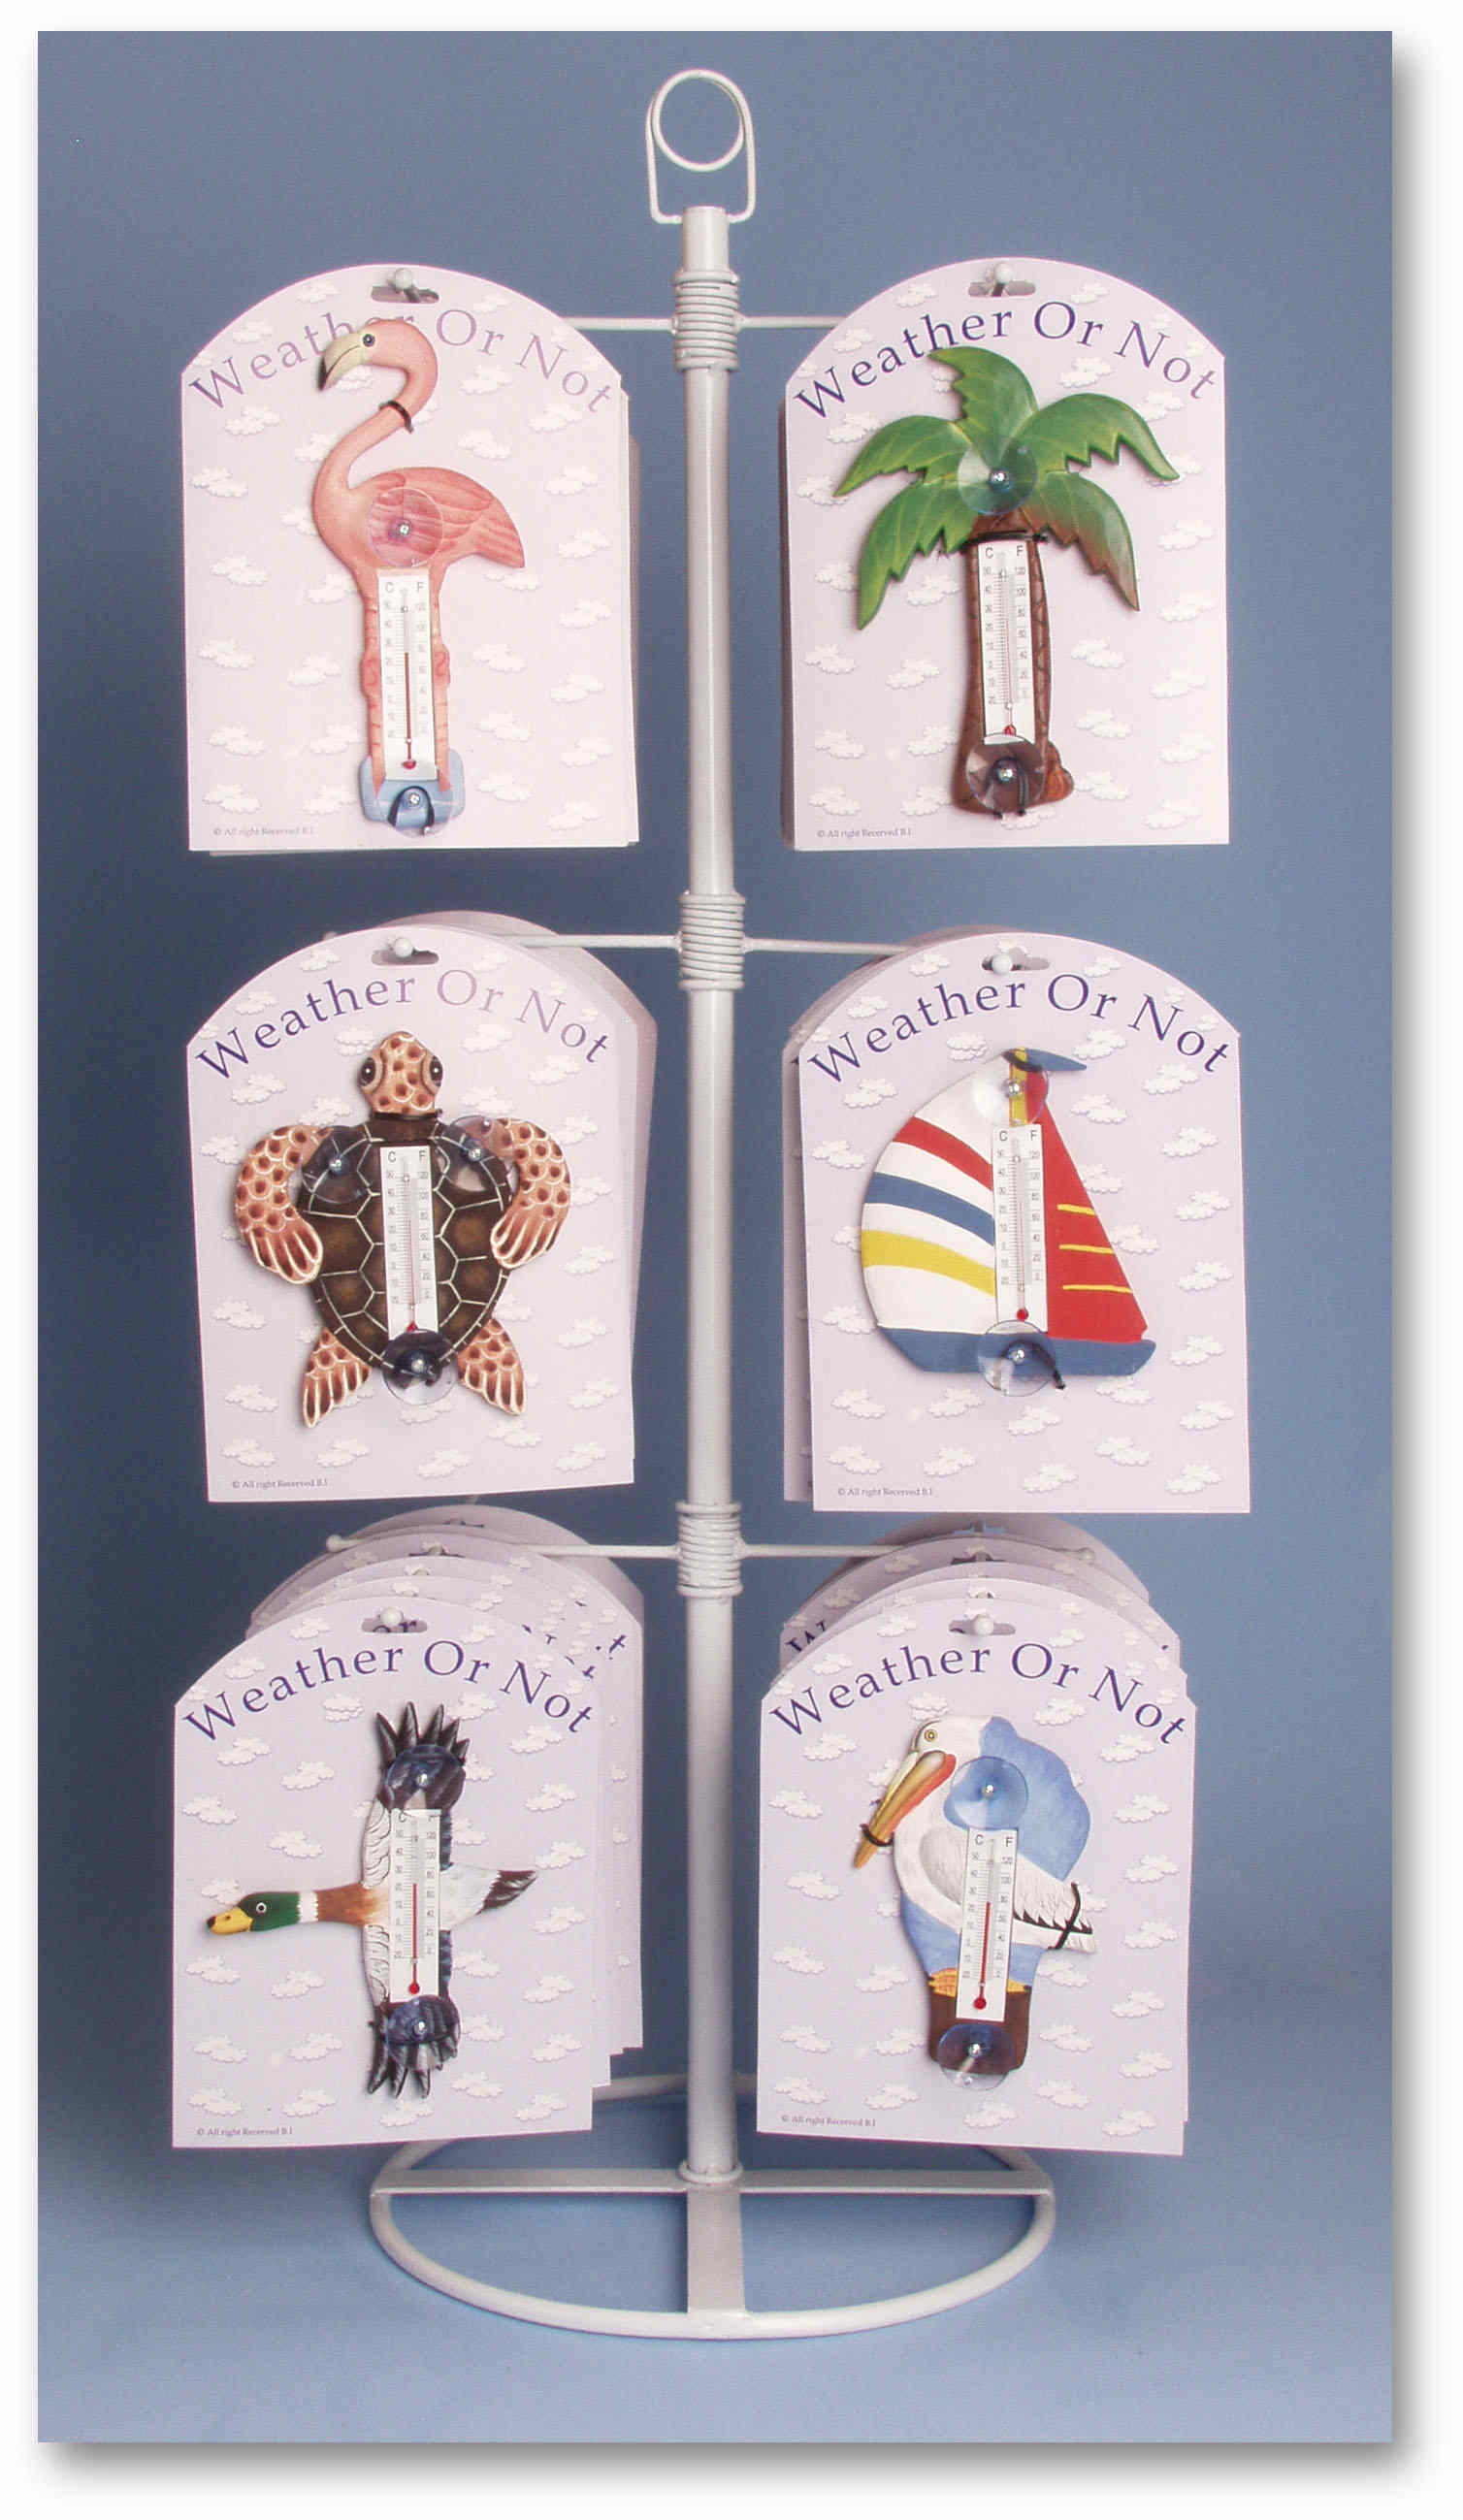 Tabletop Display for Small Window Thermometers or Single Wallhooks, holds 12 styles